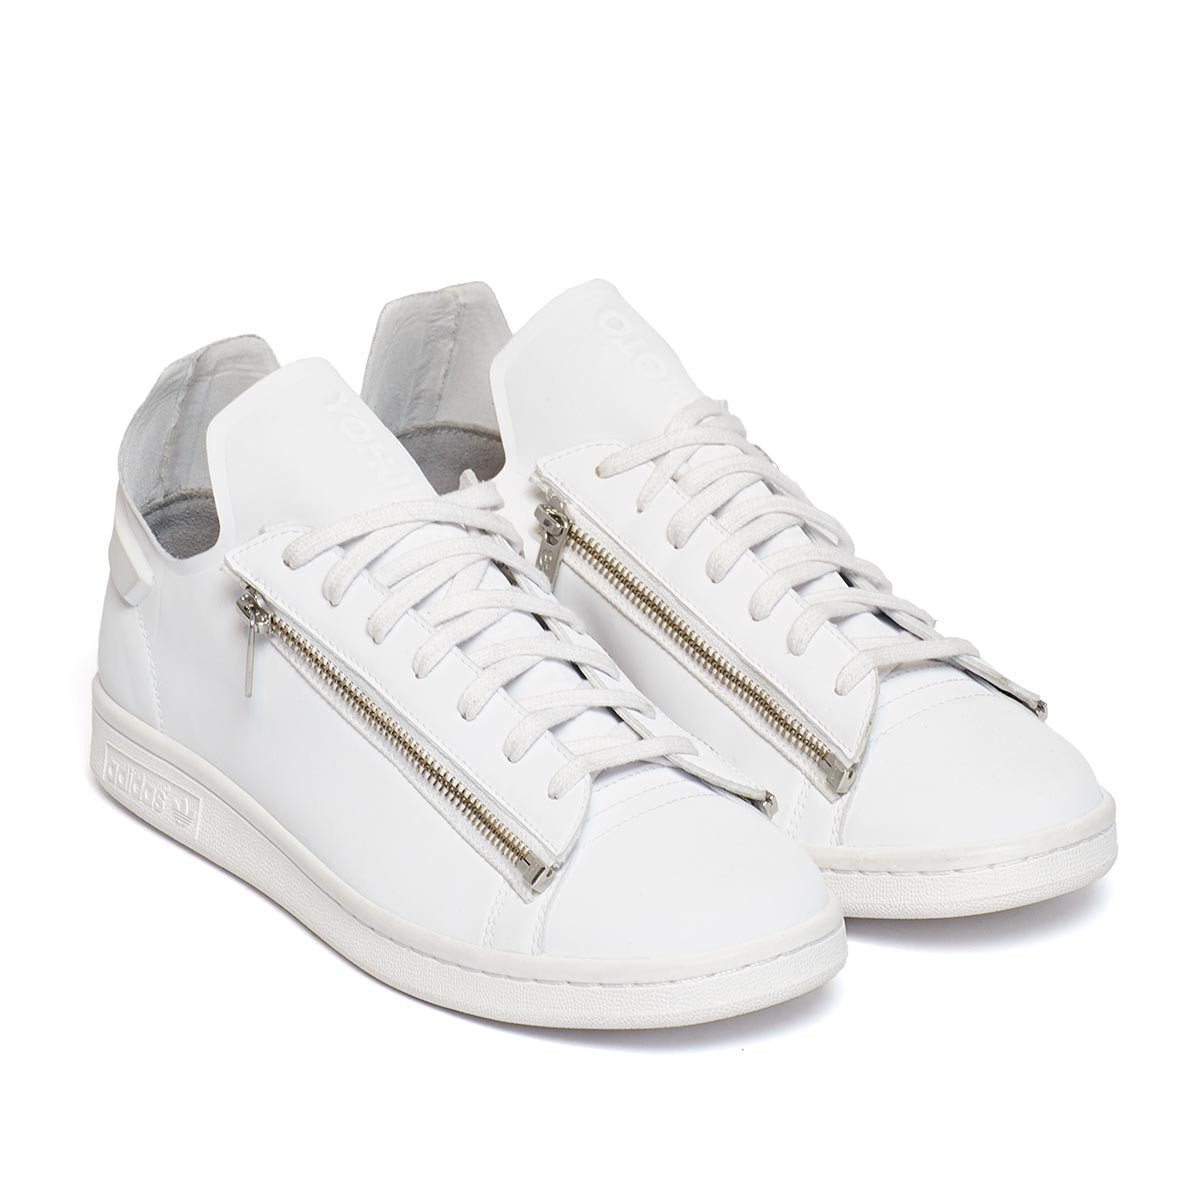 864f4c48a9fce White out  5 luxe white sneakers for the streets